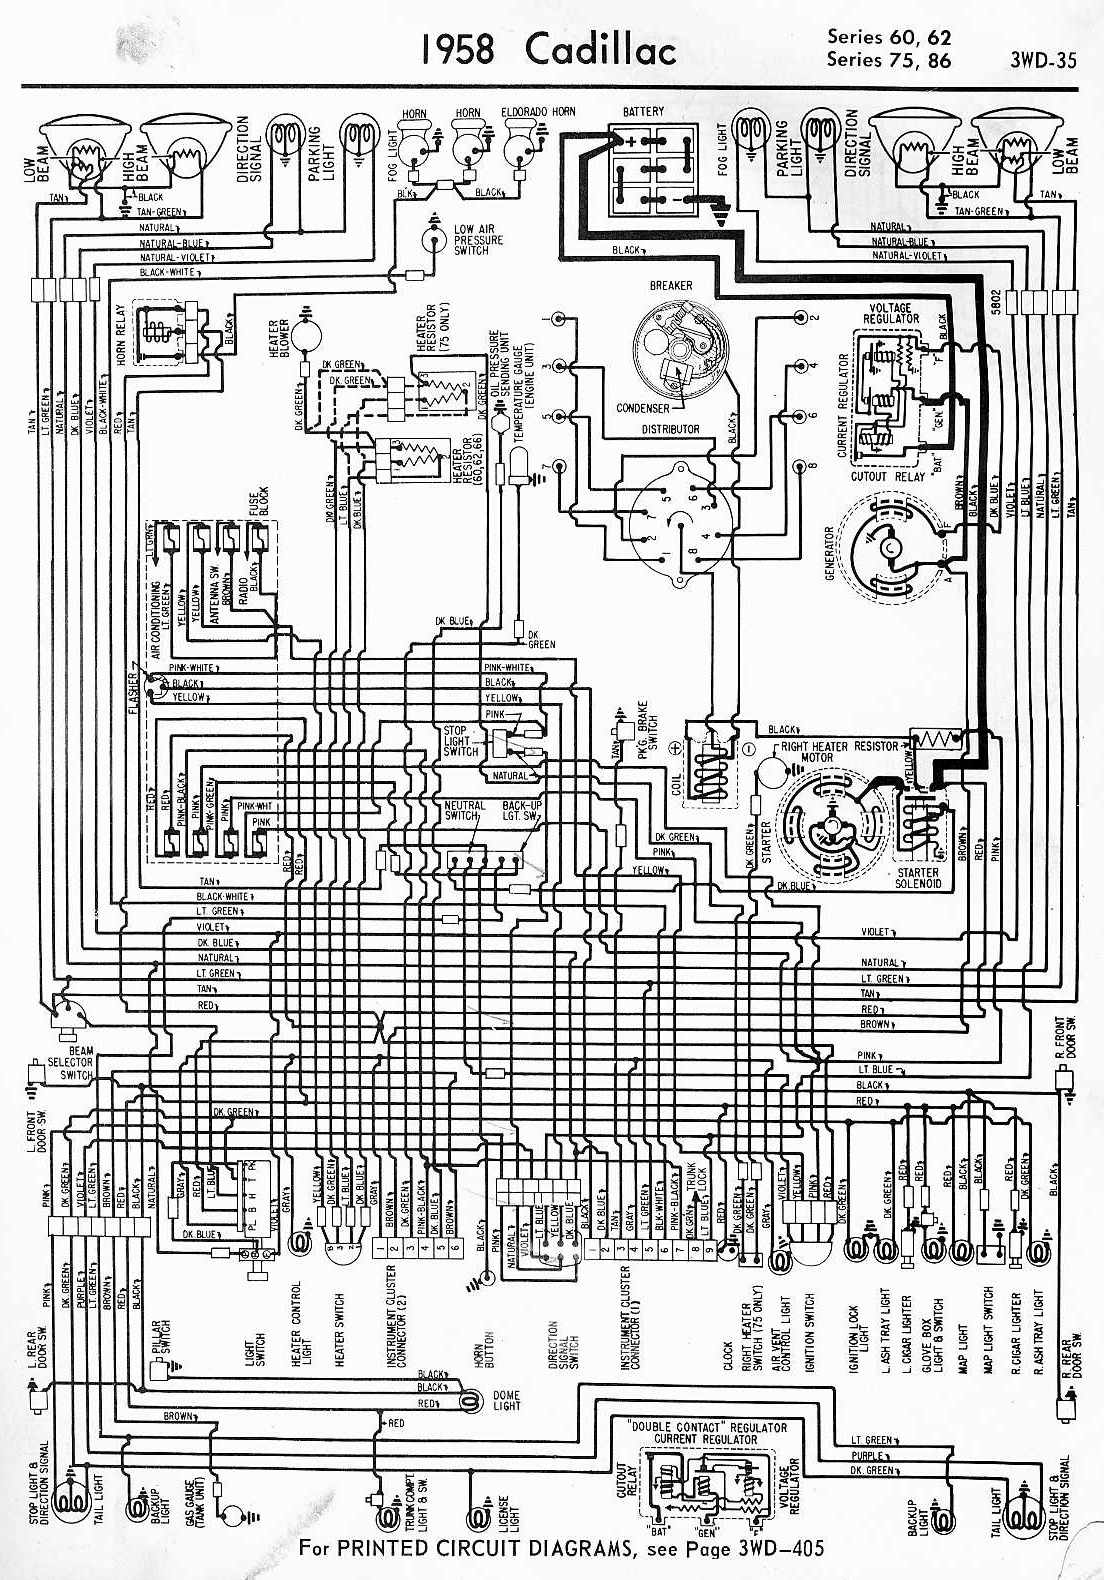 Rover 75 Electric Seat Wiring Diagram - Auto Electrical Wiring Diagram •